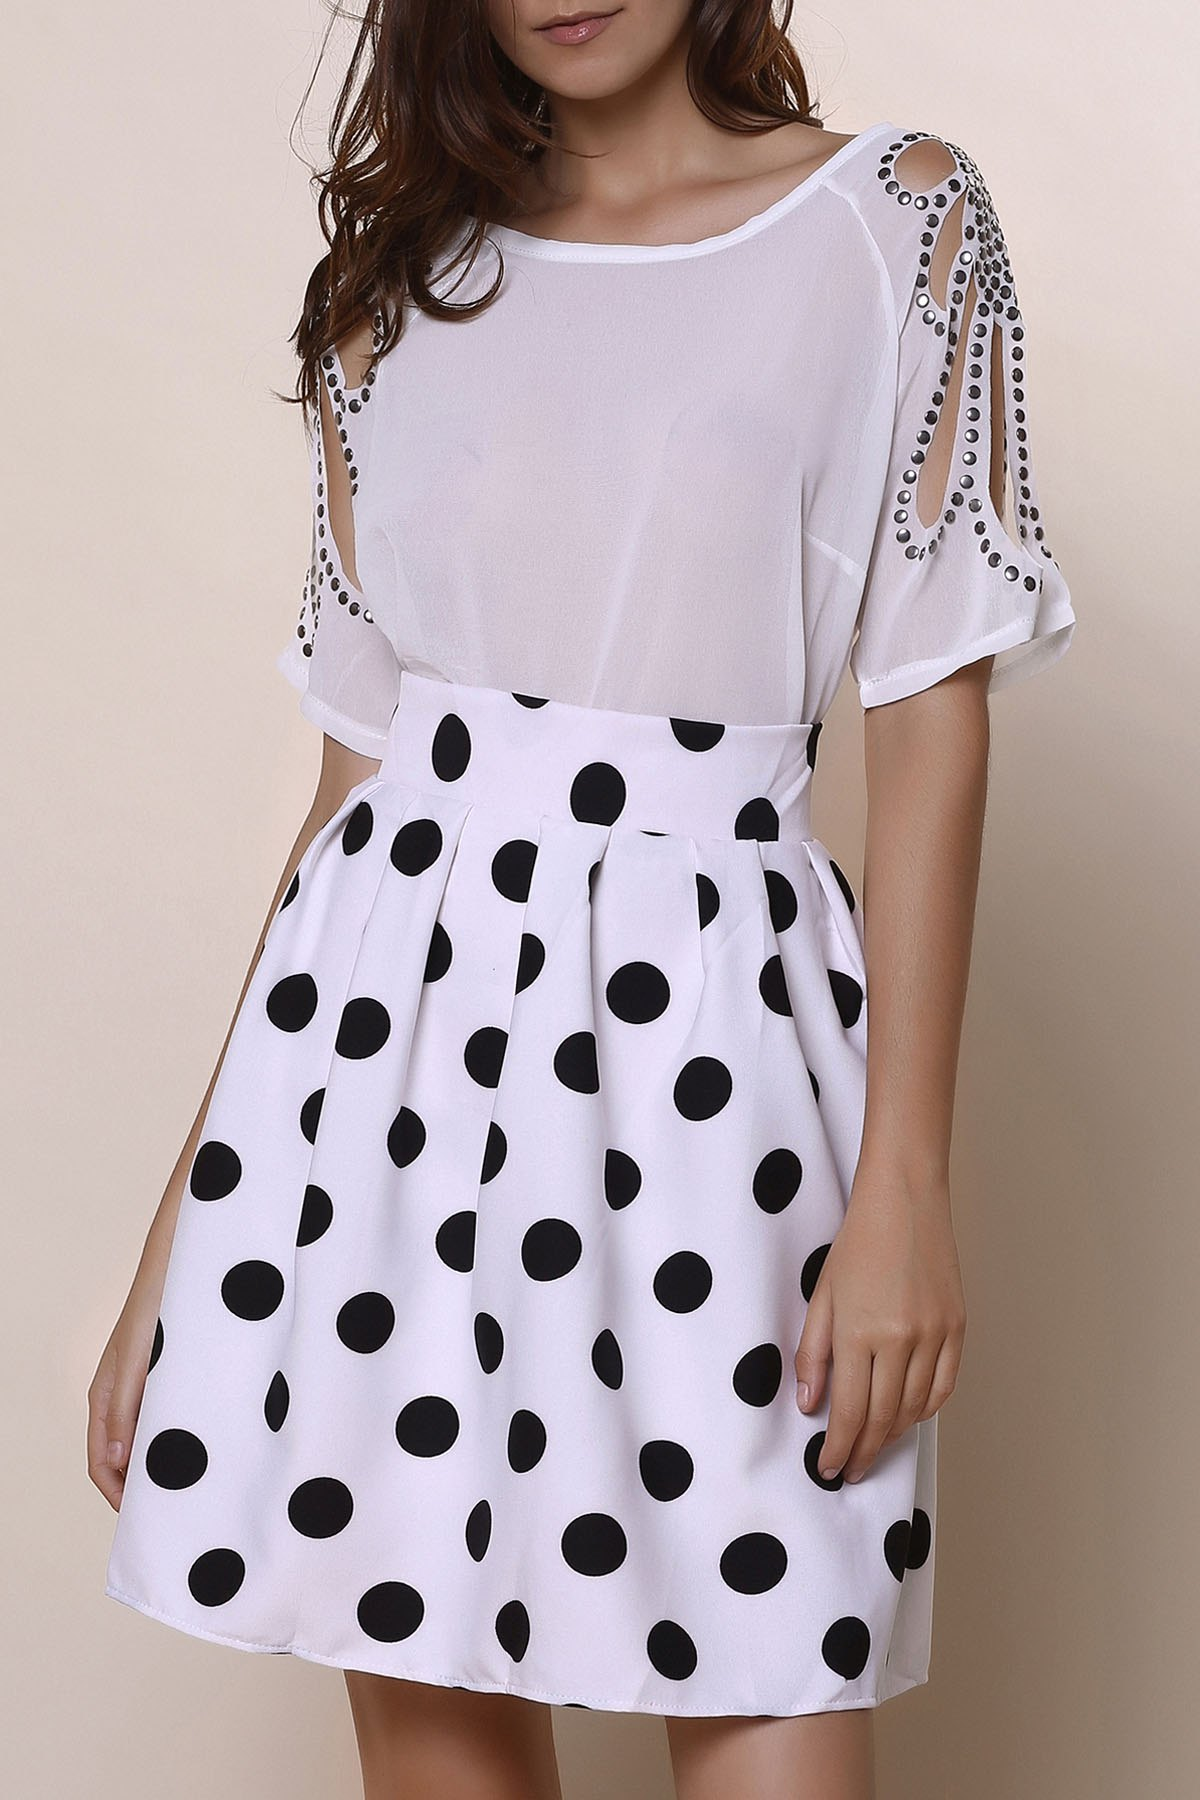 Vintage High-Waisted Ruffled Polka Dot Women's Skirt - WHITE/BLACK M